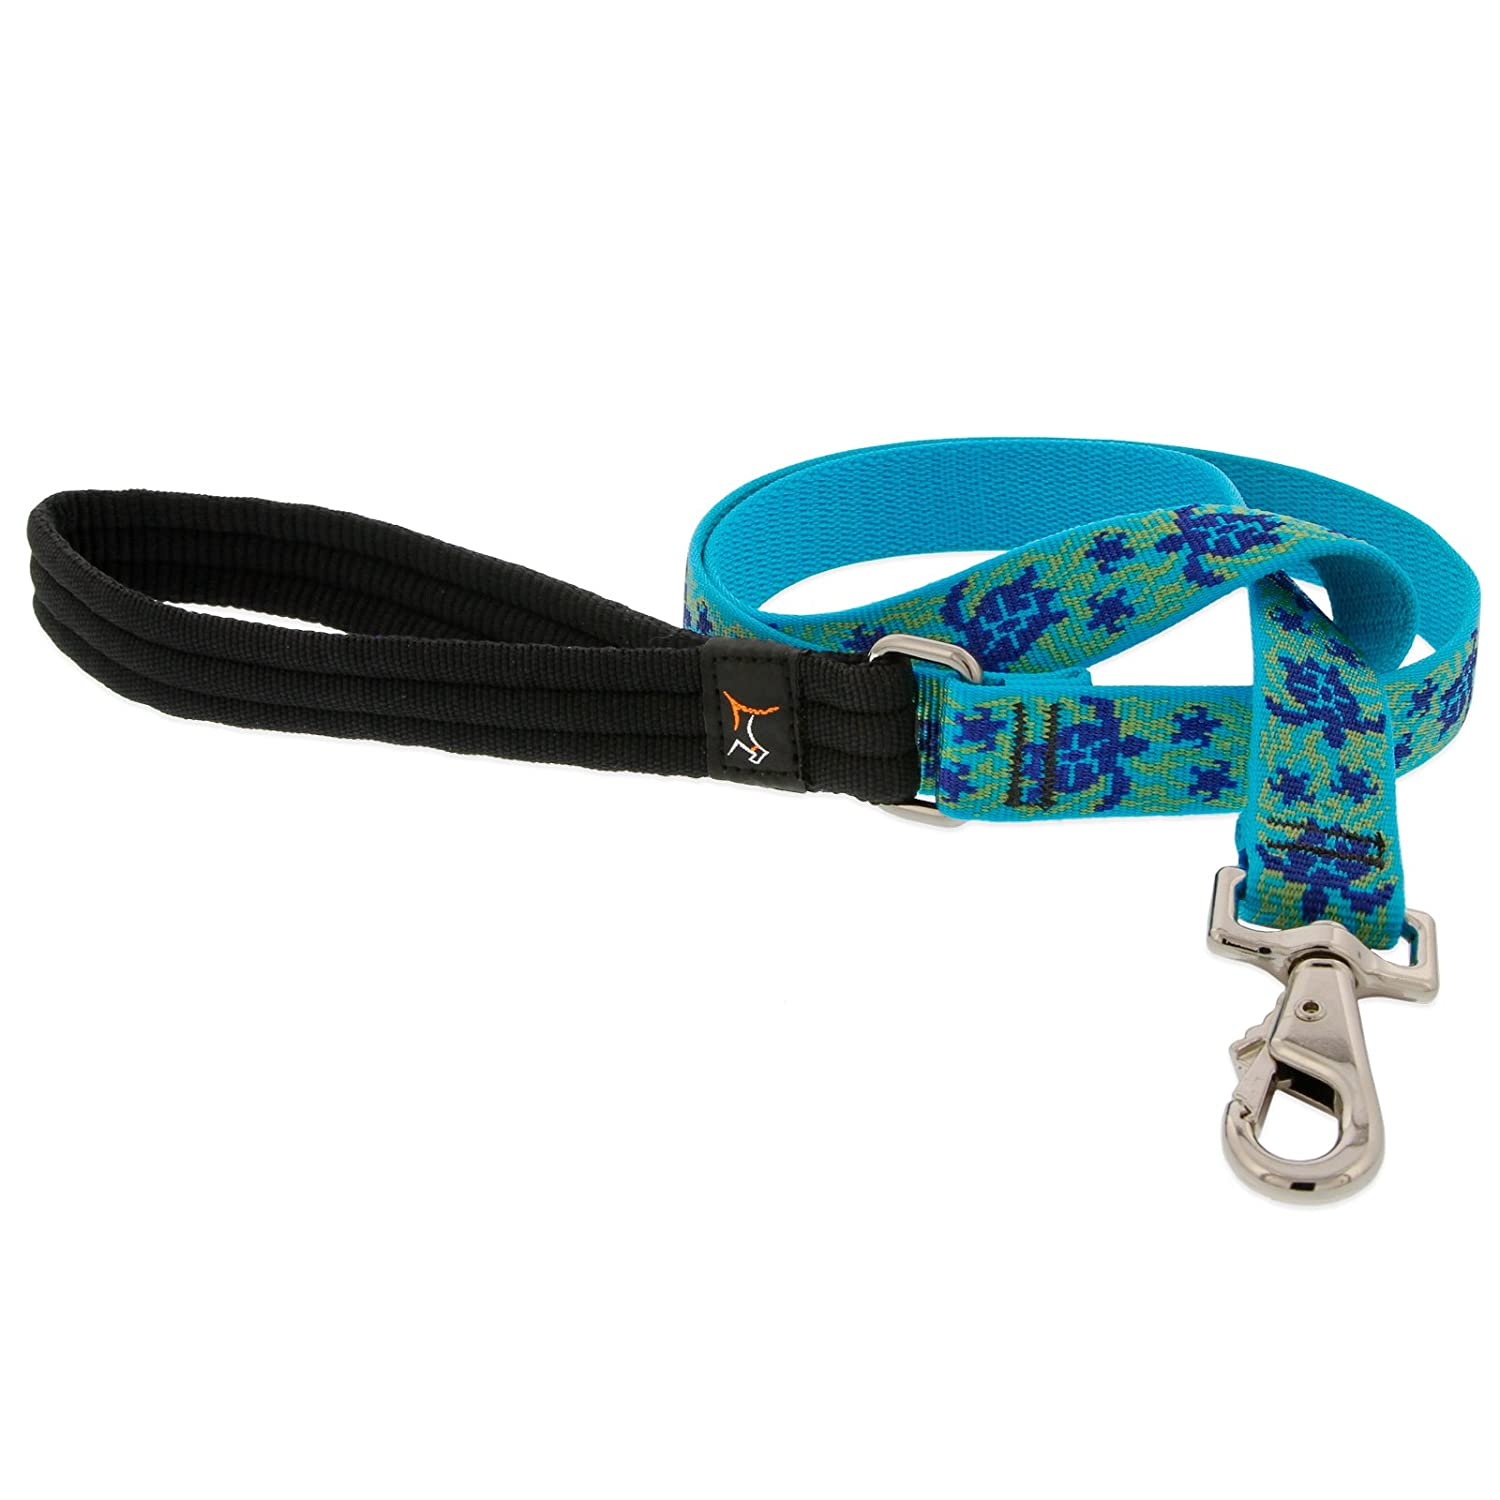 1\ LupinePet Originals 1  Turtle Reef 6-Foot Padded Handle Leash for Medium and Larger Dogs